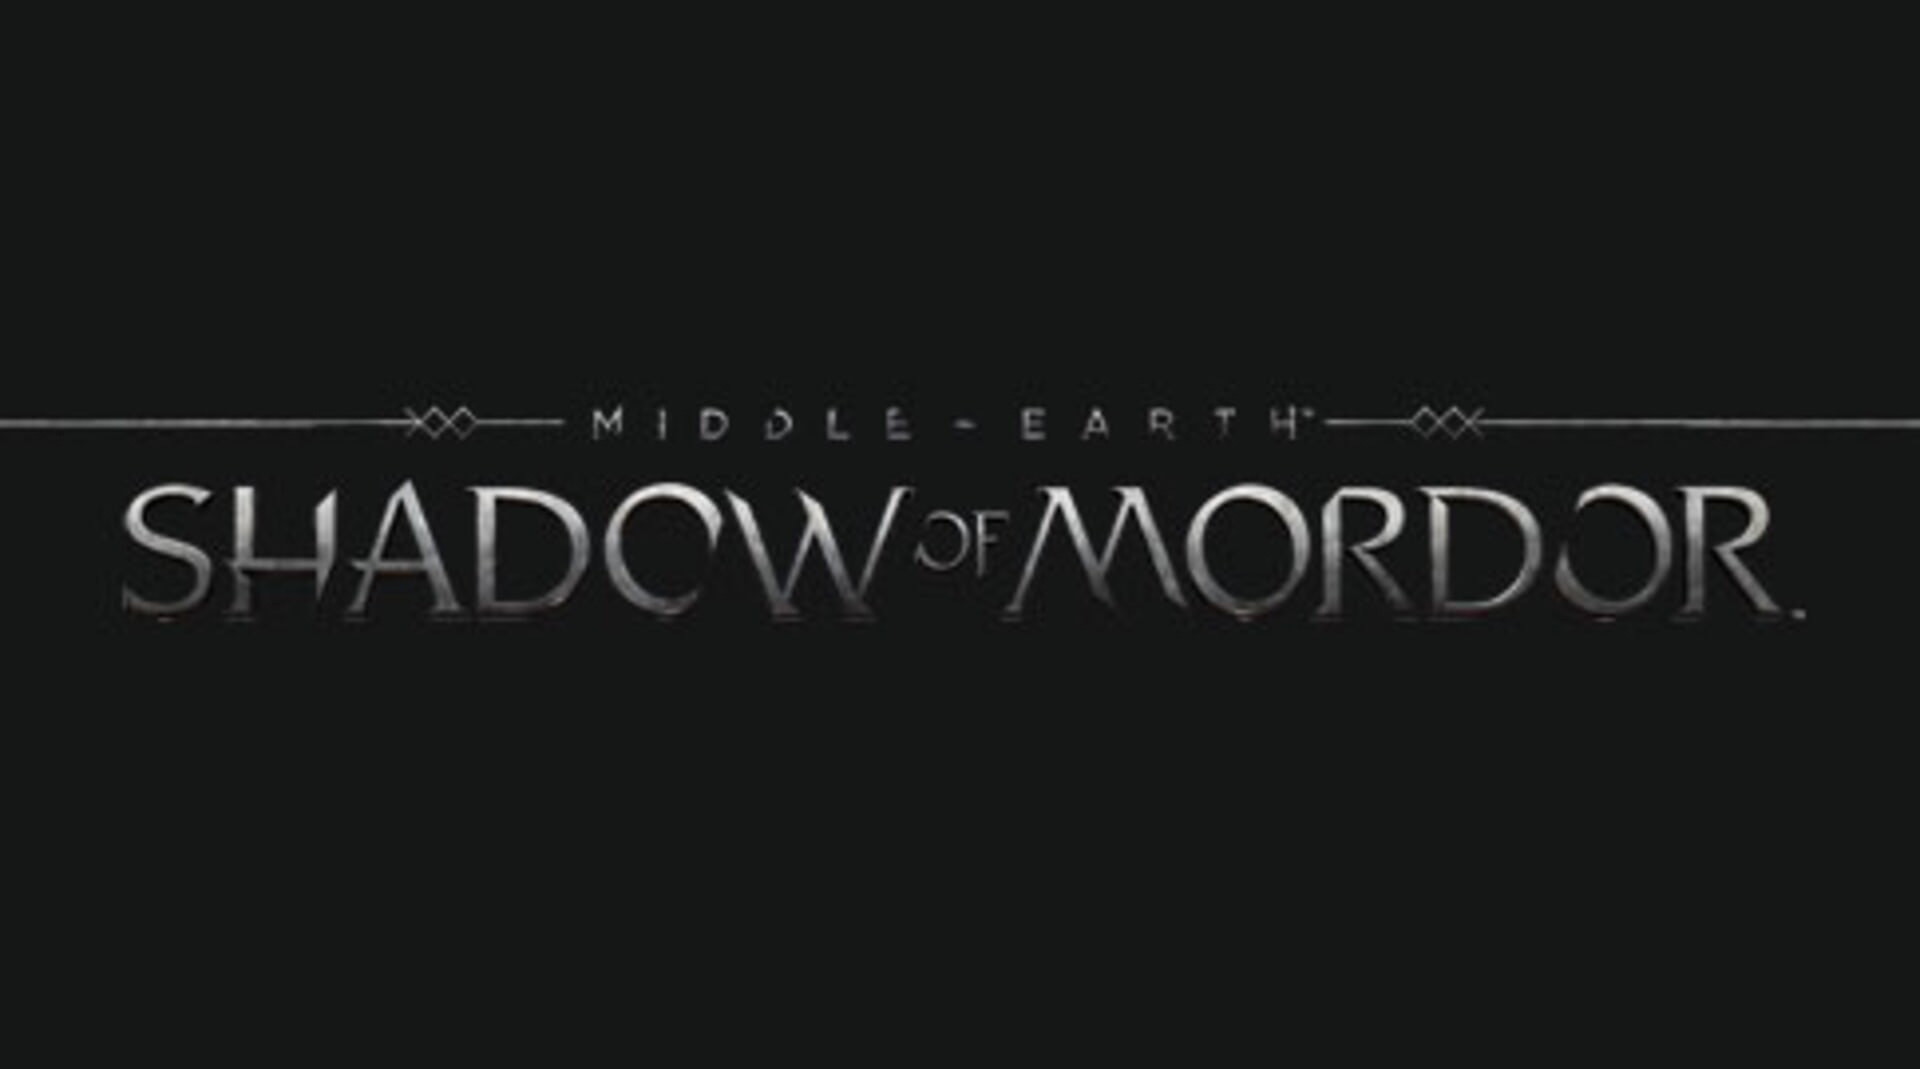 Middle-earth: Shadow of Mordor - Image 7